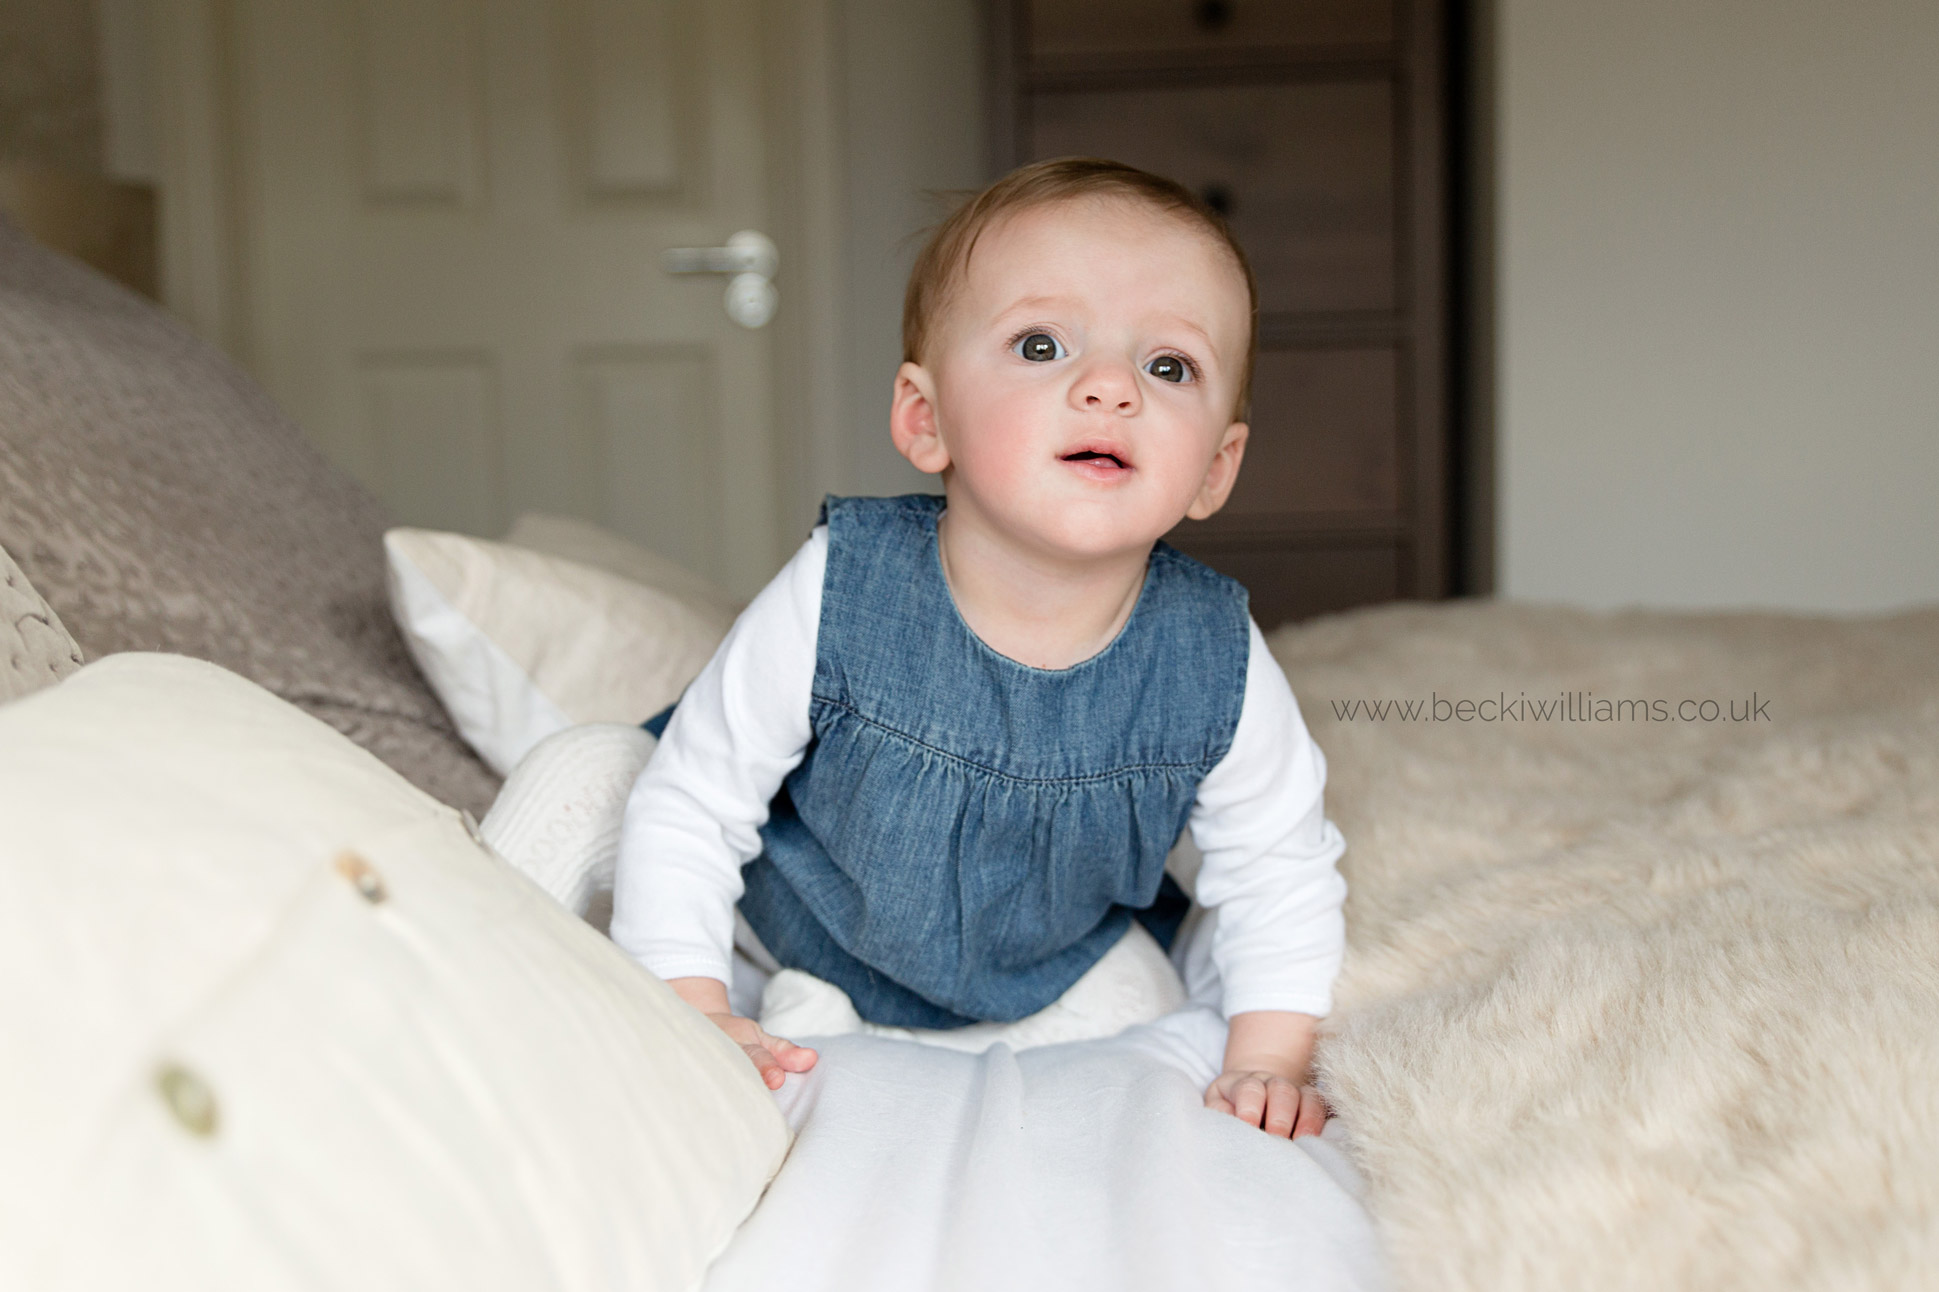 family-photographer-hemel-hempstead-8-month-old-baby-on-bed